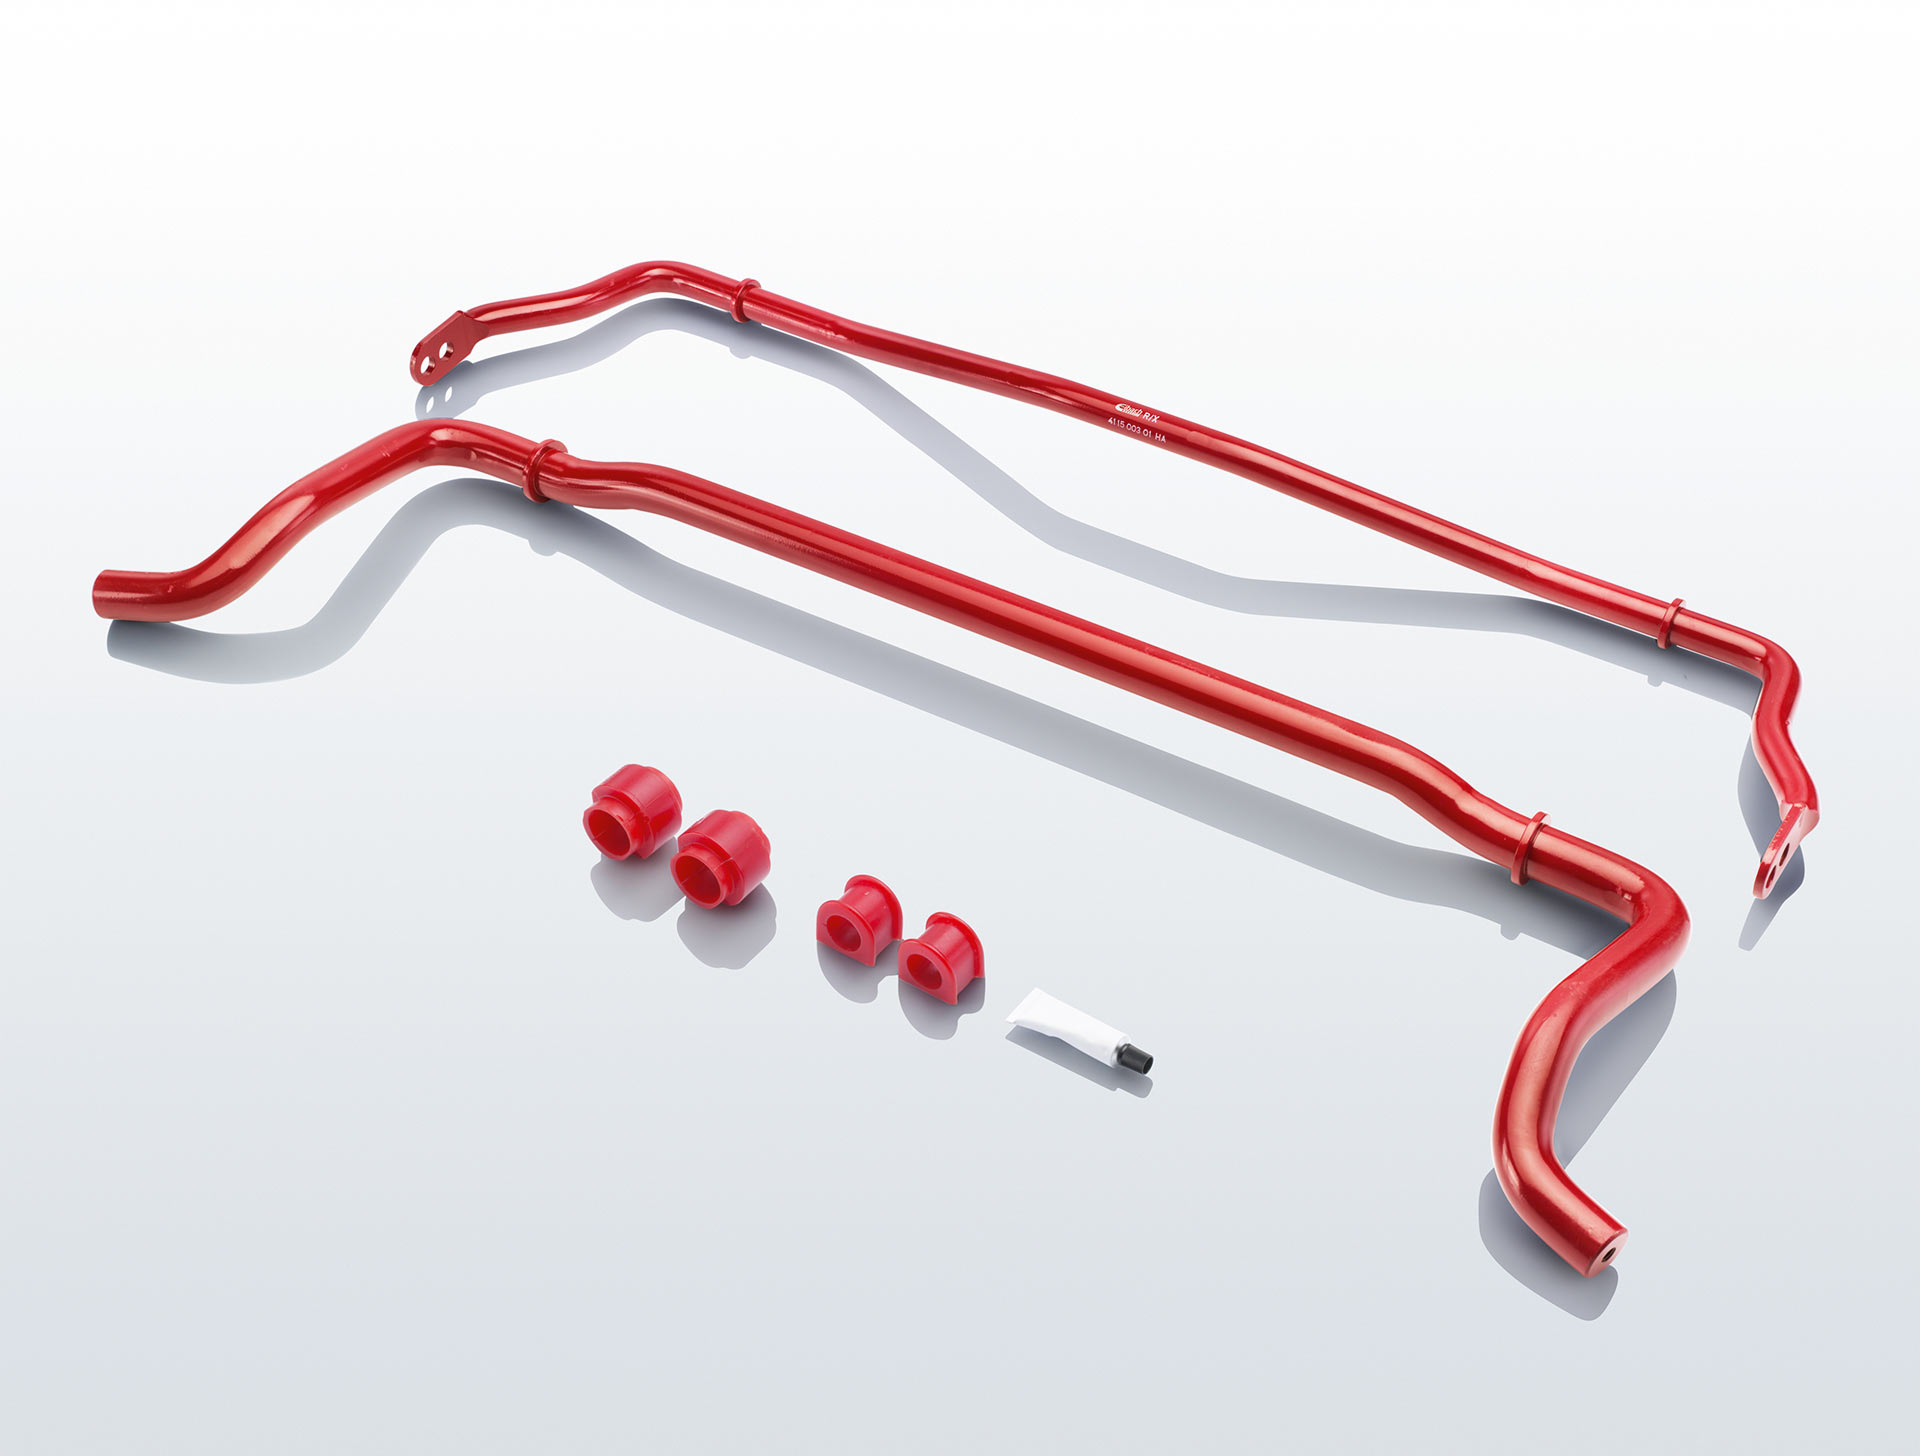 Eibach Stabilisator Anti-Roll-Kit VW Corrado 53I 2.9 VR6 08.87-12.95 VW Golf 3